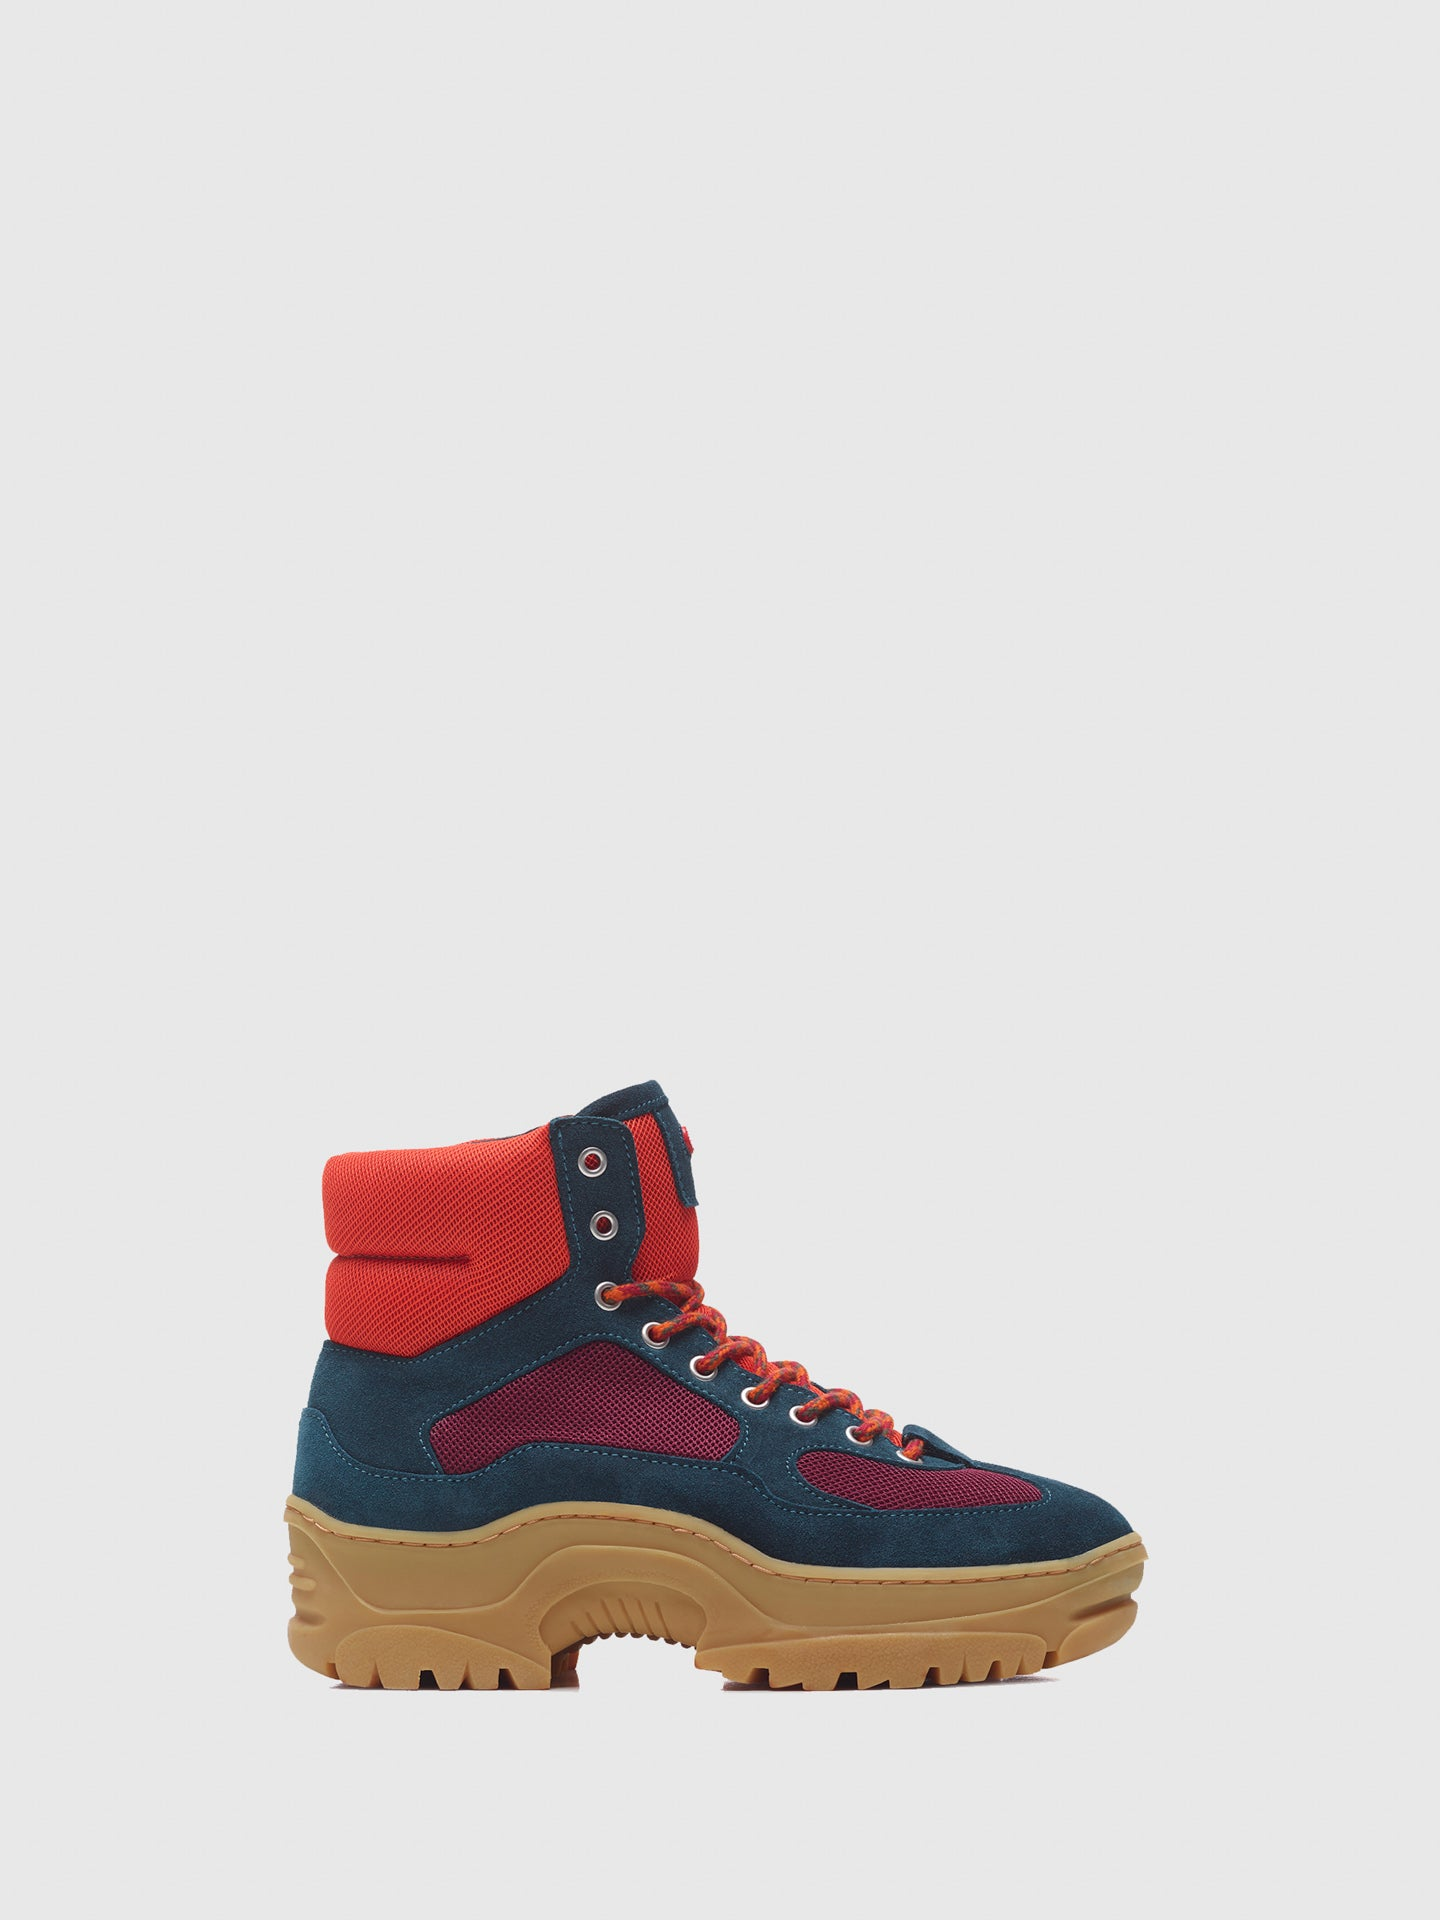 Nobrand Multicolor Lace-up Boots